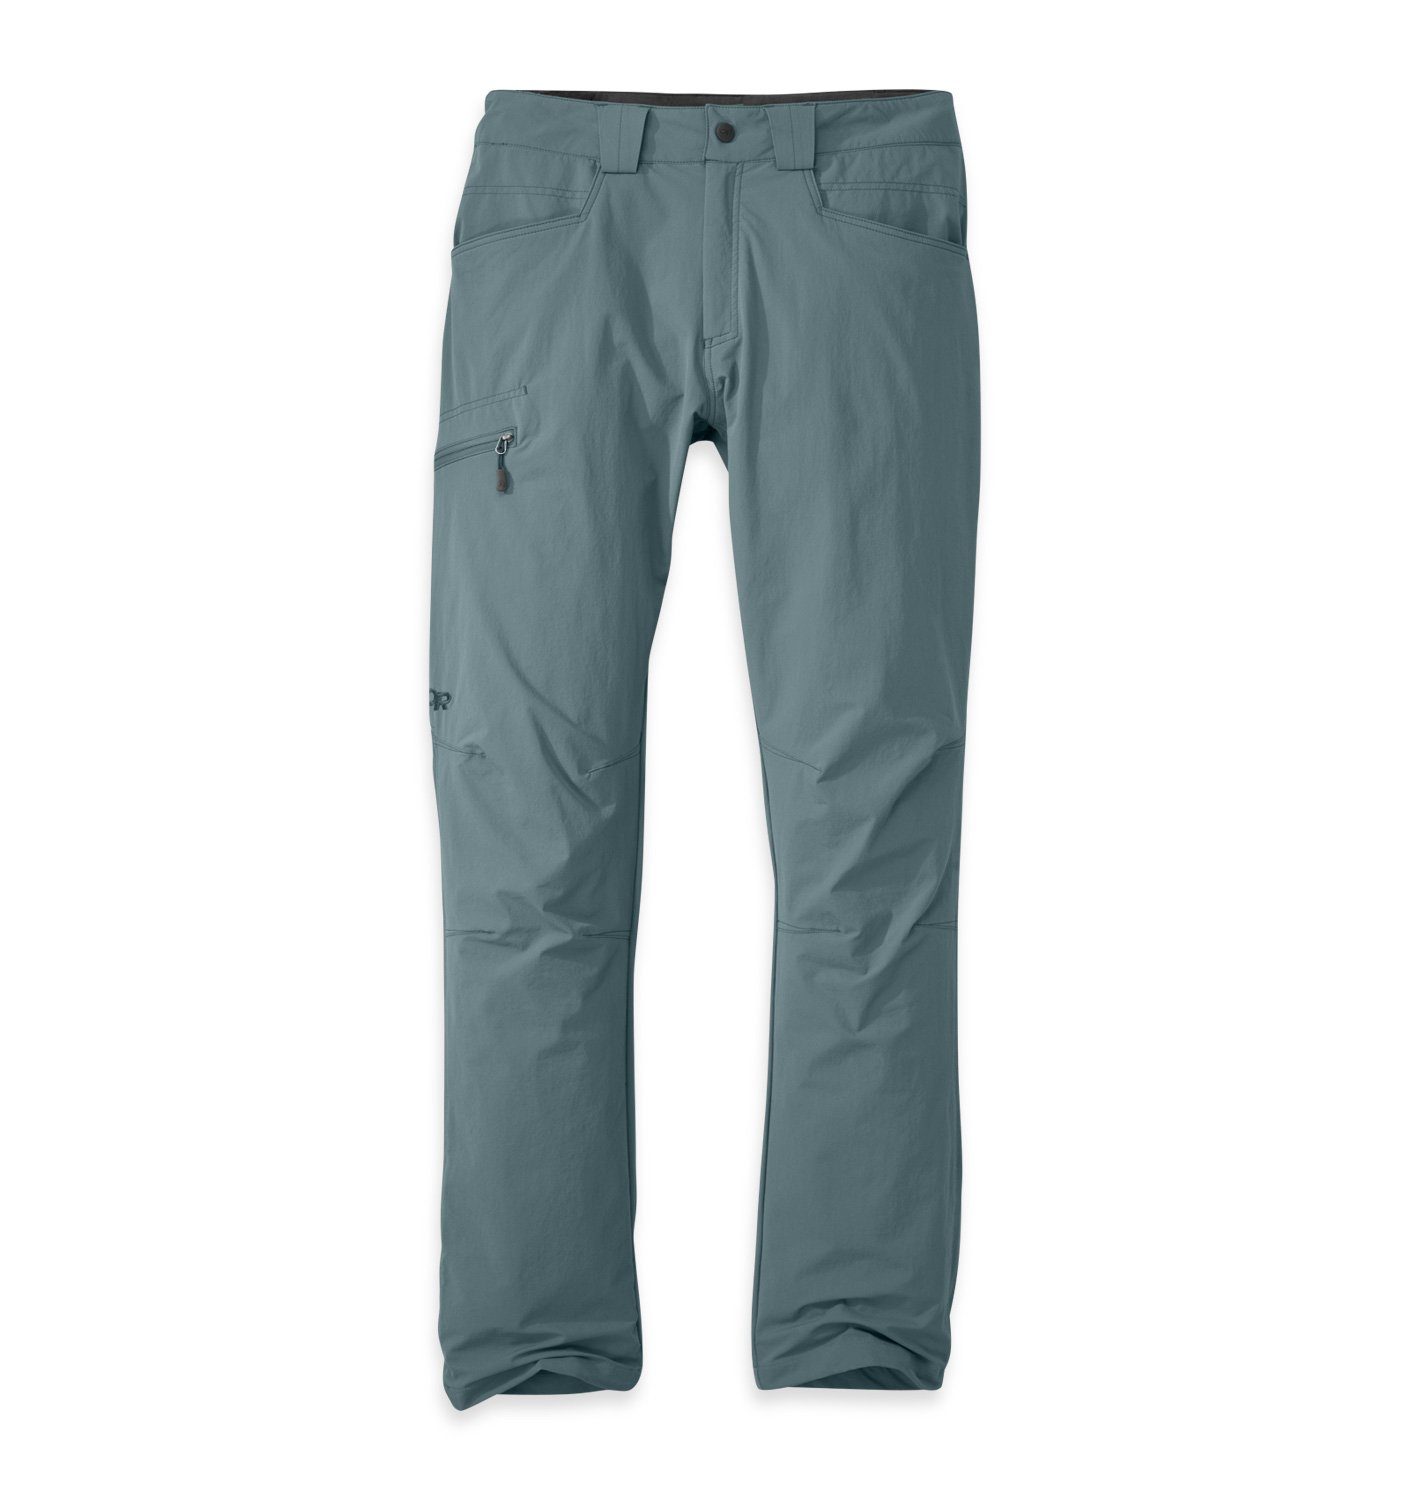 Outdoor Research Herren Wanderhose Men's Voodoo Pants